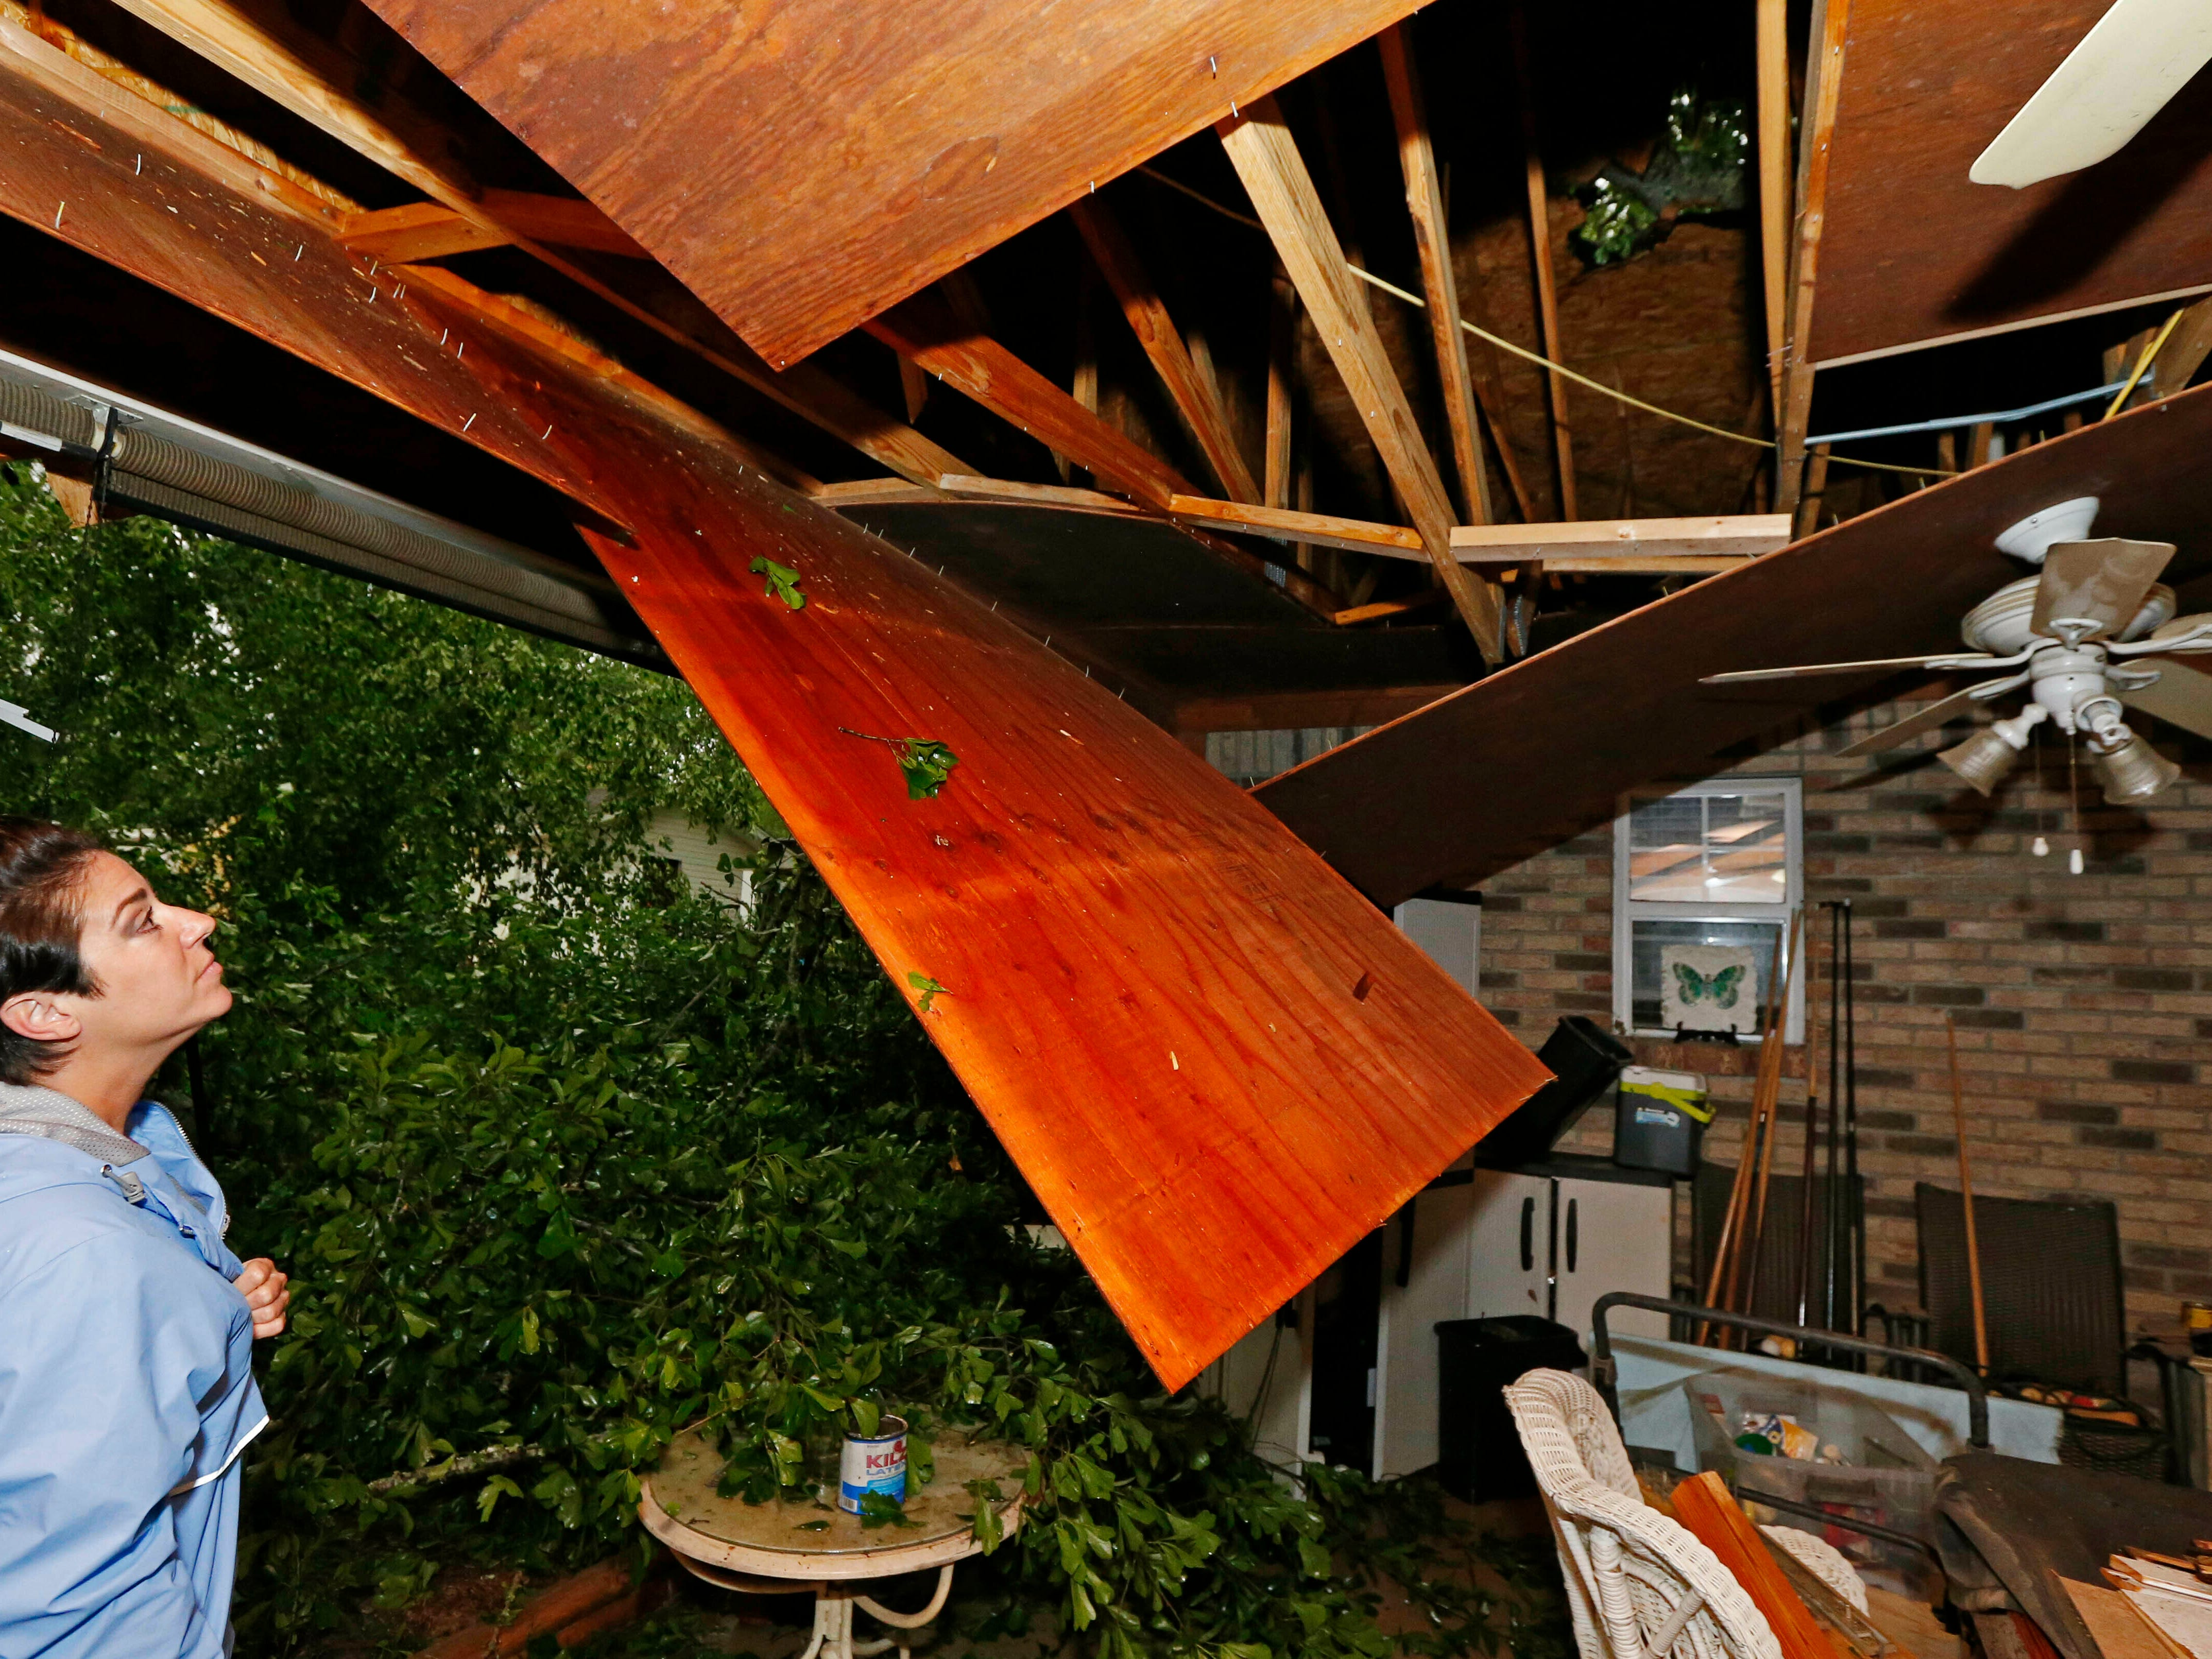 Sonya Banes looks at damage caused by a large oak tree that crashed through the ceiling of her mother's house in Learned, Miss., Thursday, April 18, 2019. Several homes were damaged by fallen trees in the tree lined community. Strong storms again roared across the South on Thursday, topping trees and leaving more than 100,000 people without power across Mississippi, Louisiana and Texas.